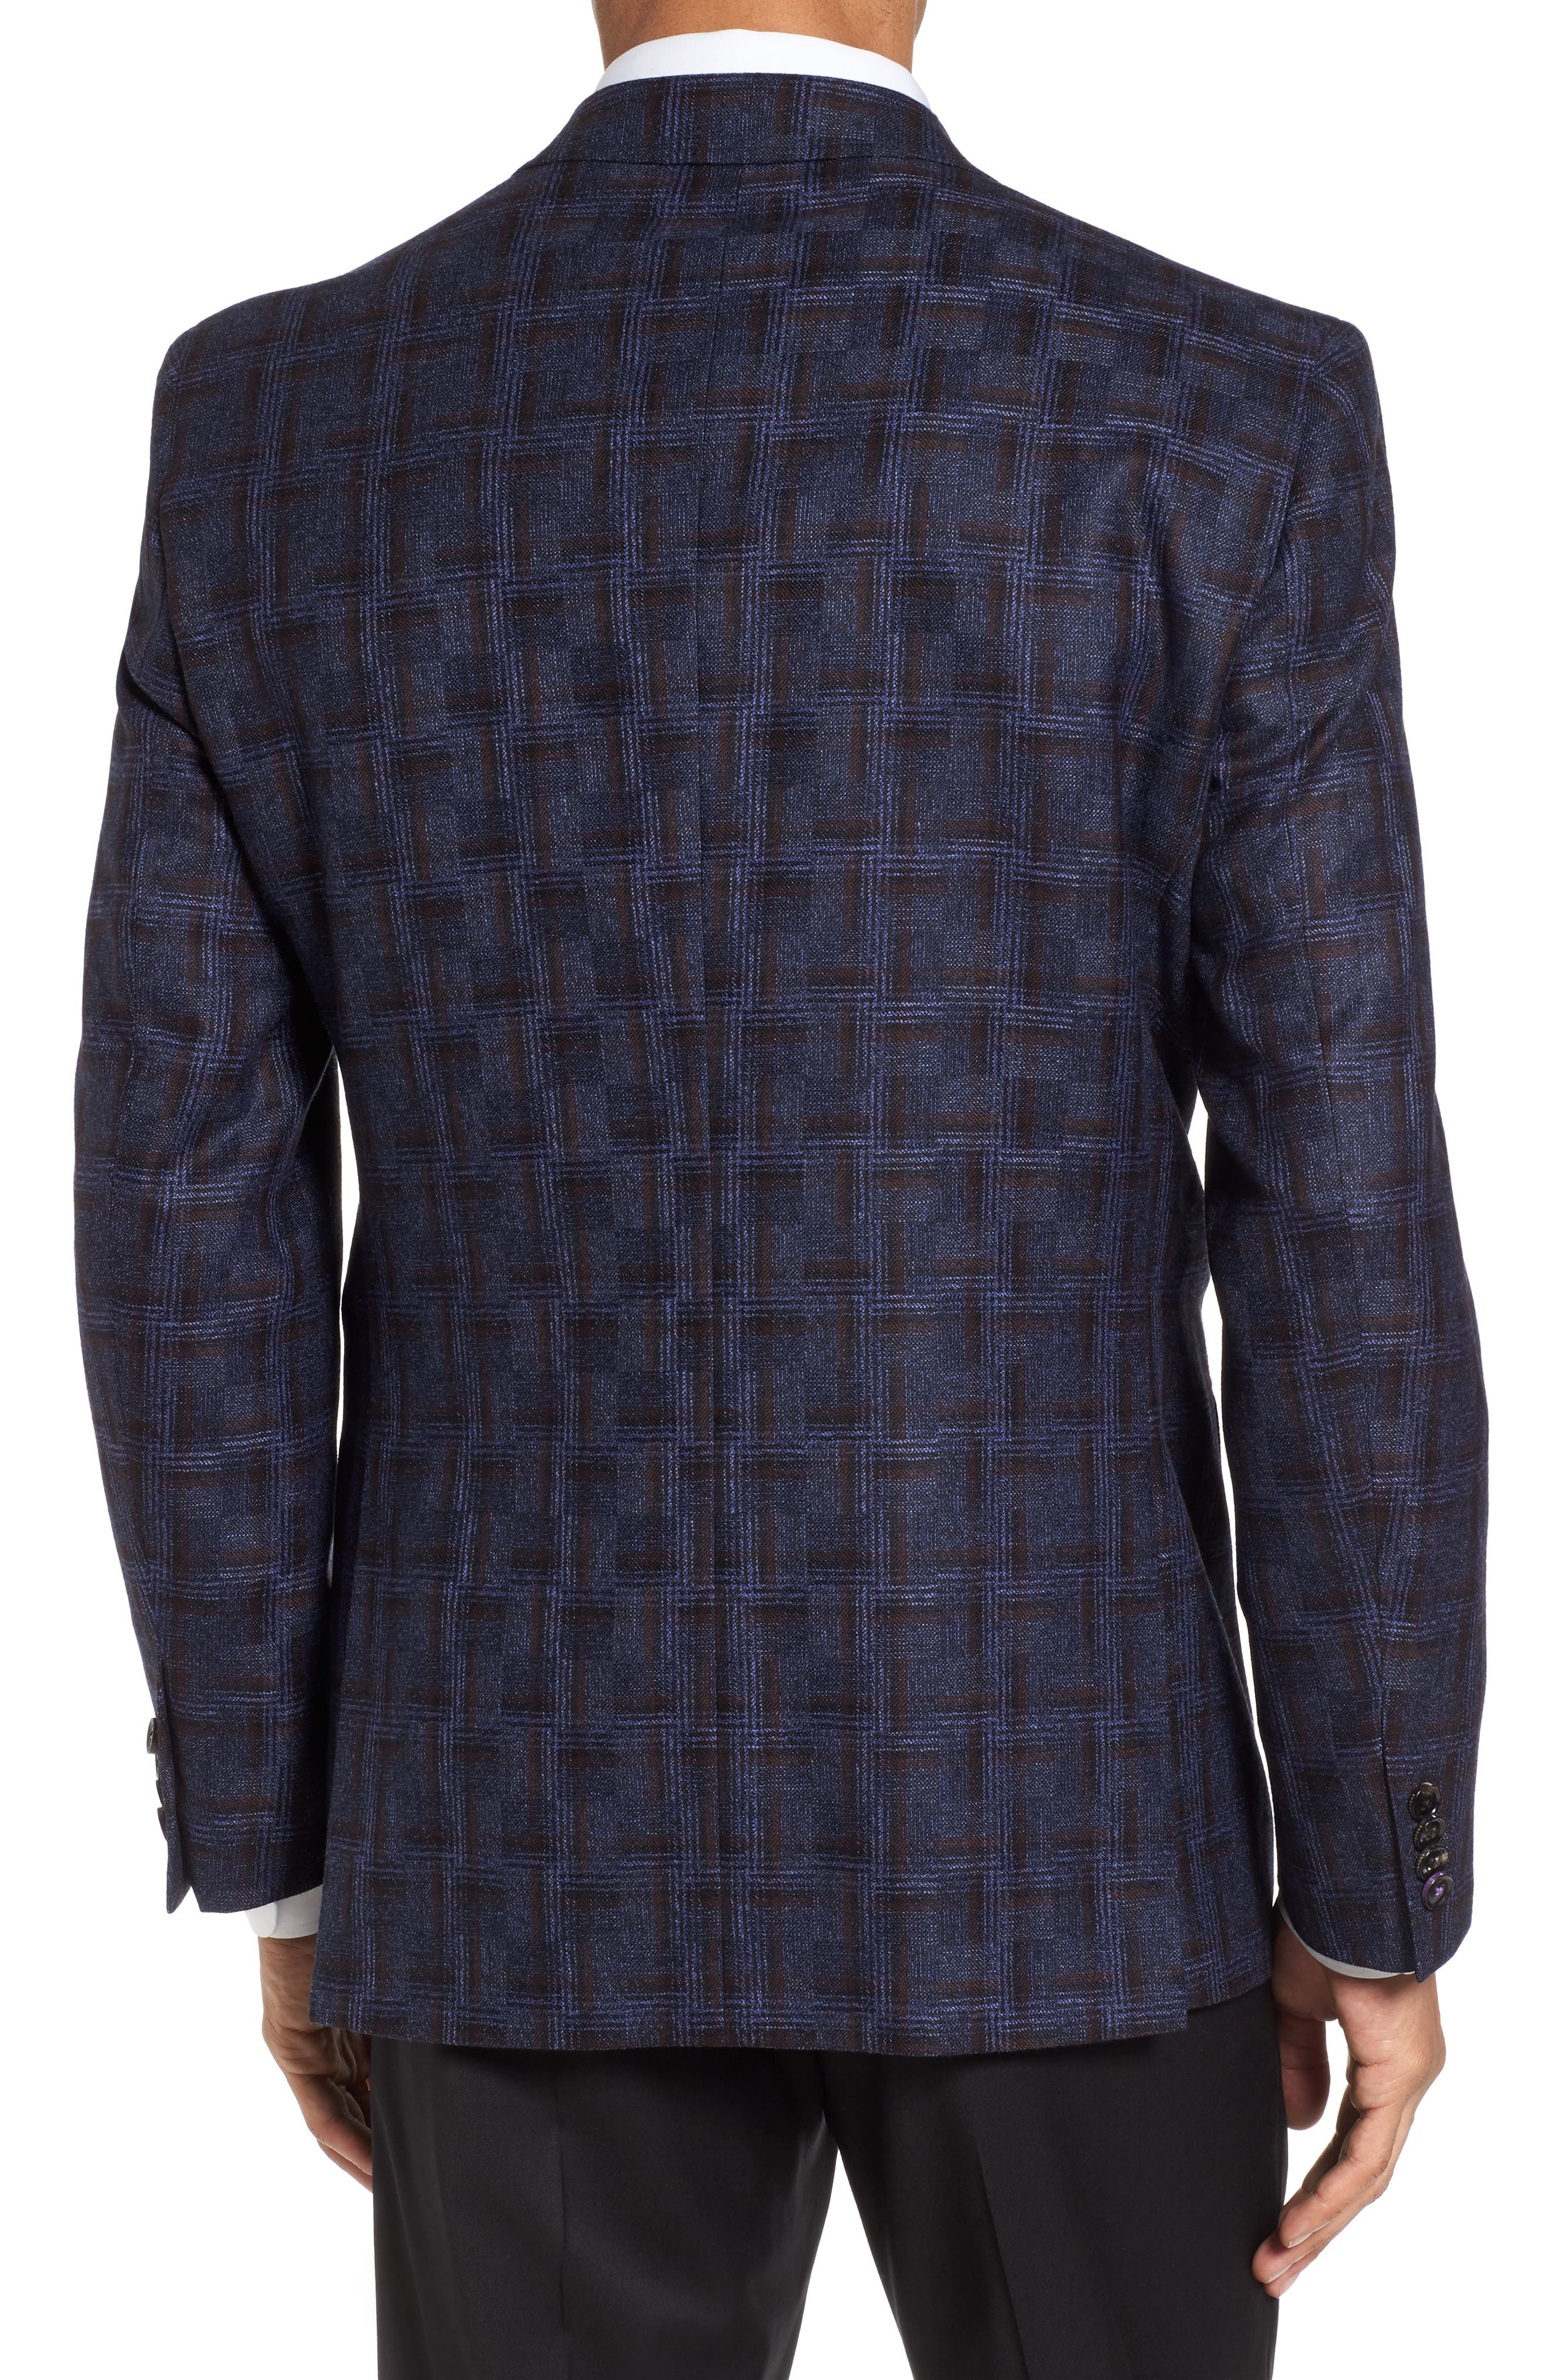 Jay Trim Fit Plaid Wool Sport Coat,                             Alternate thumbnail 2, color,